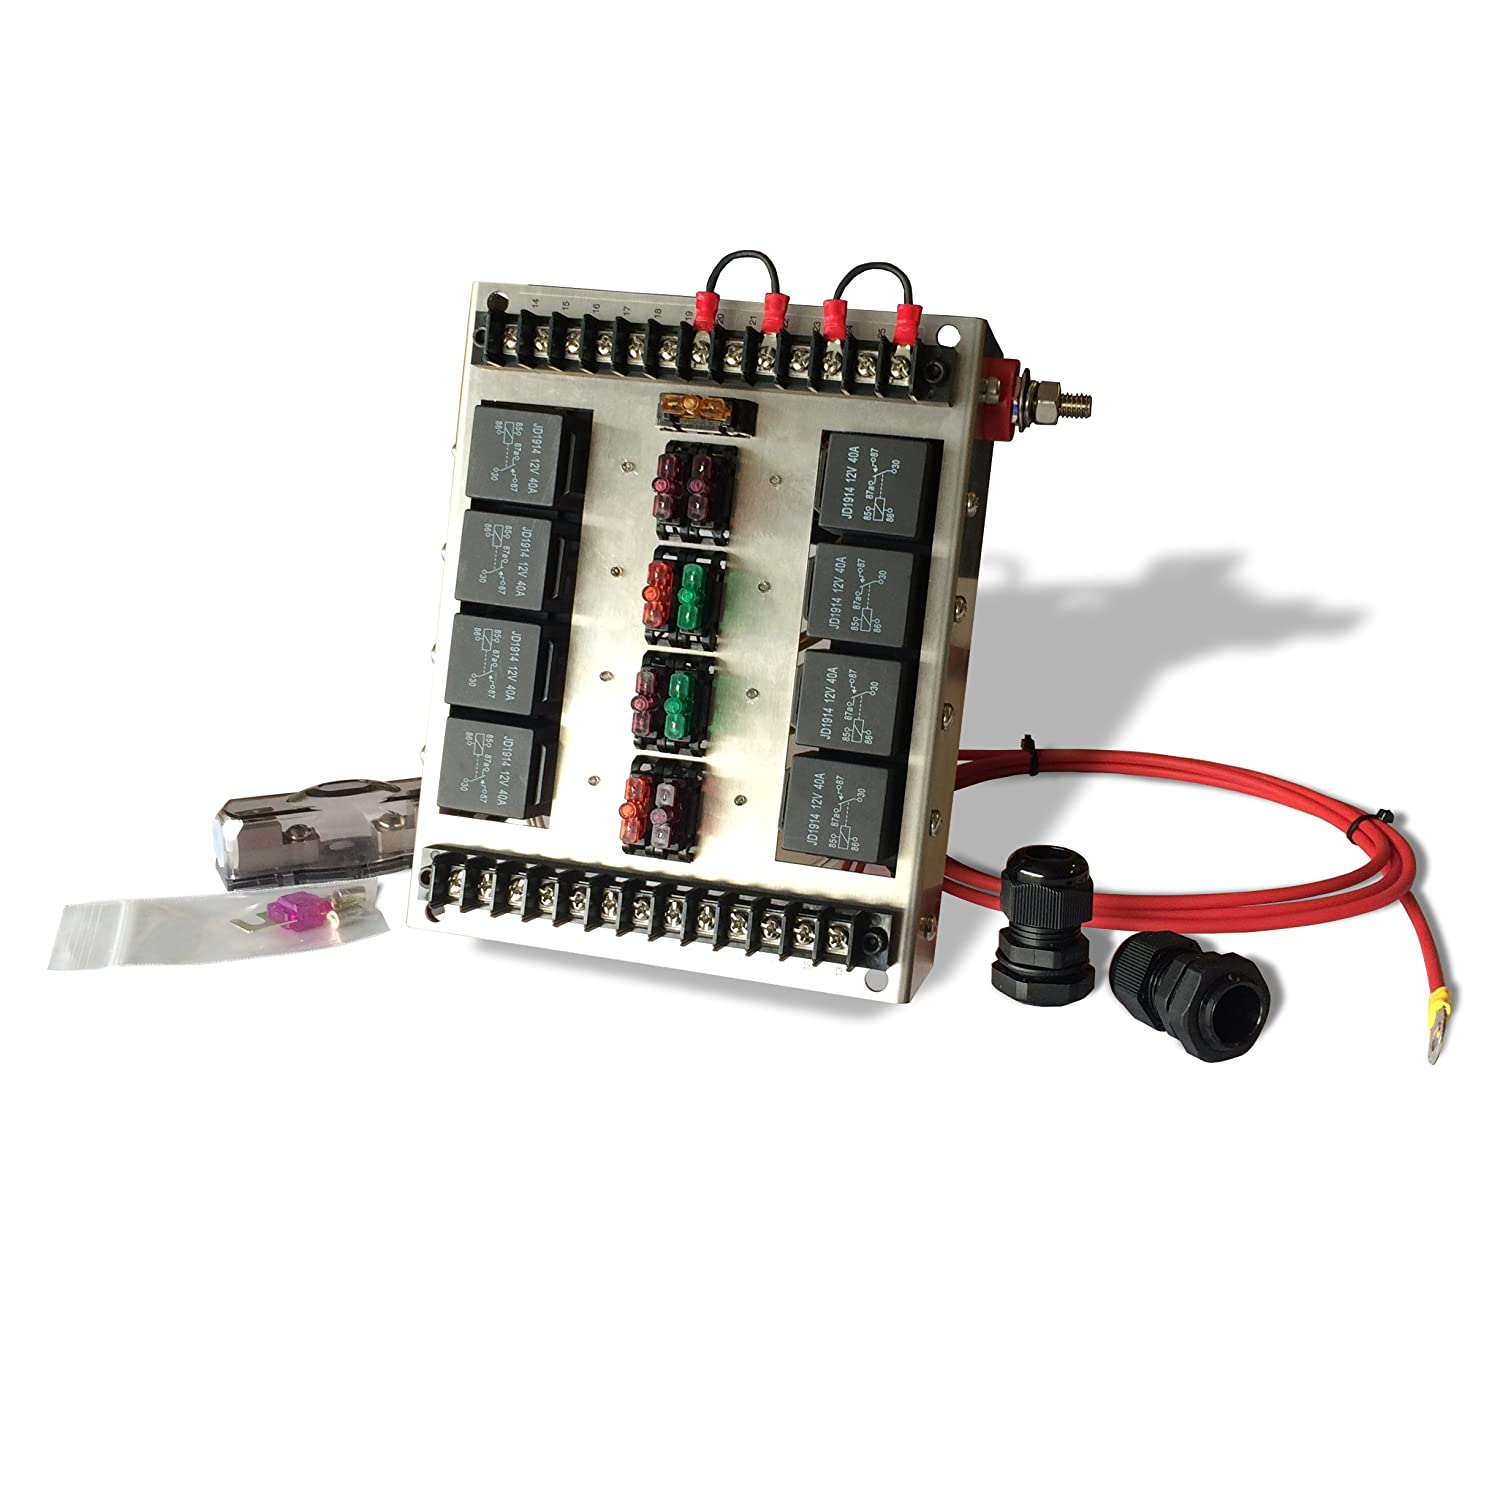 8 Relay Panel Box and Wiring Block Kit with 12 Volt Automotive Relay Switches and LED Blade Fuses MGI